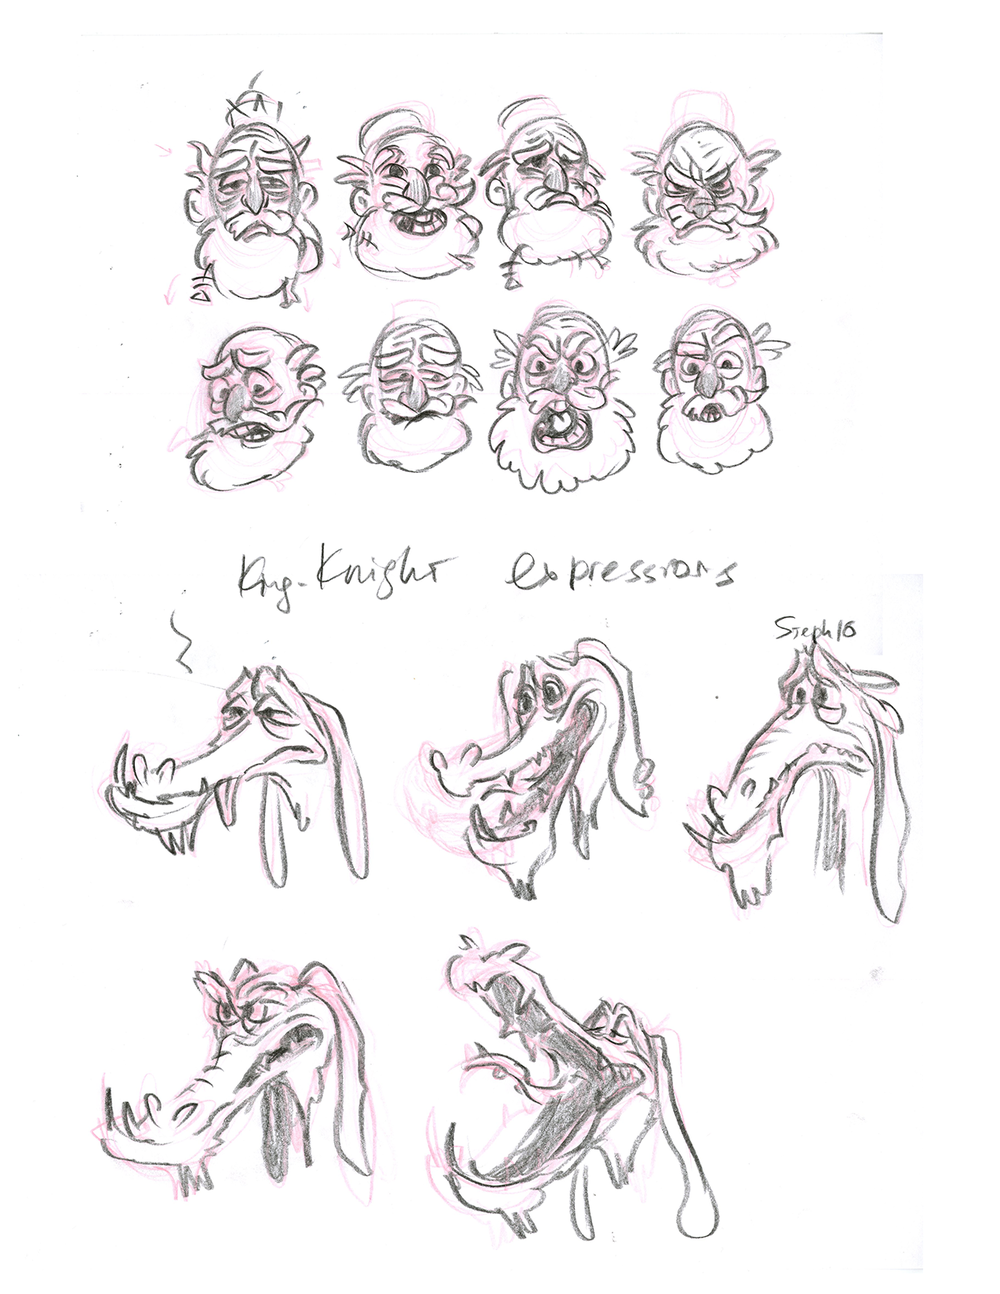 Knight and Dragon Exression sheets CharacterDesign_By_Steph_Dvoyak